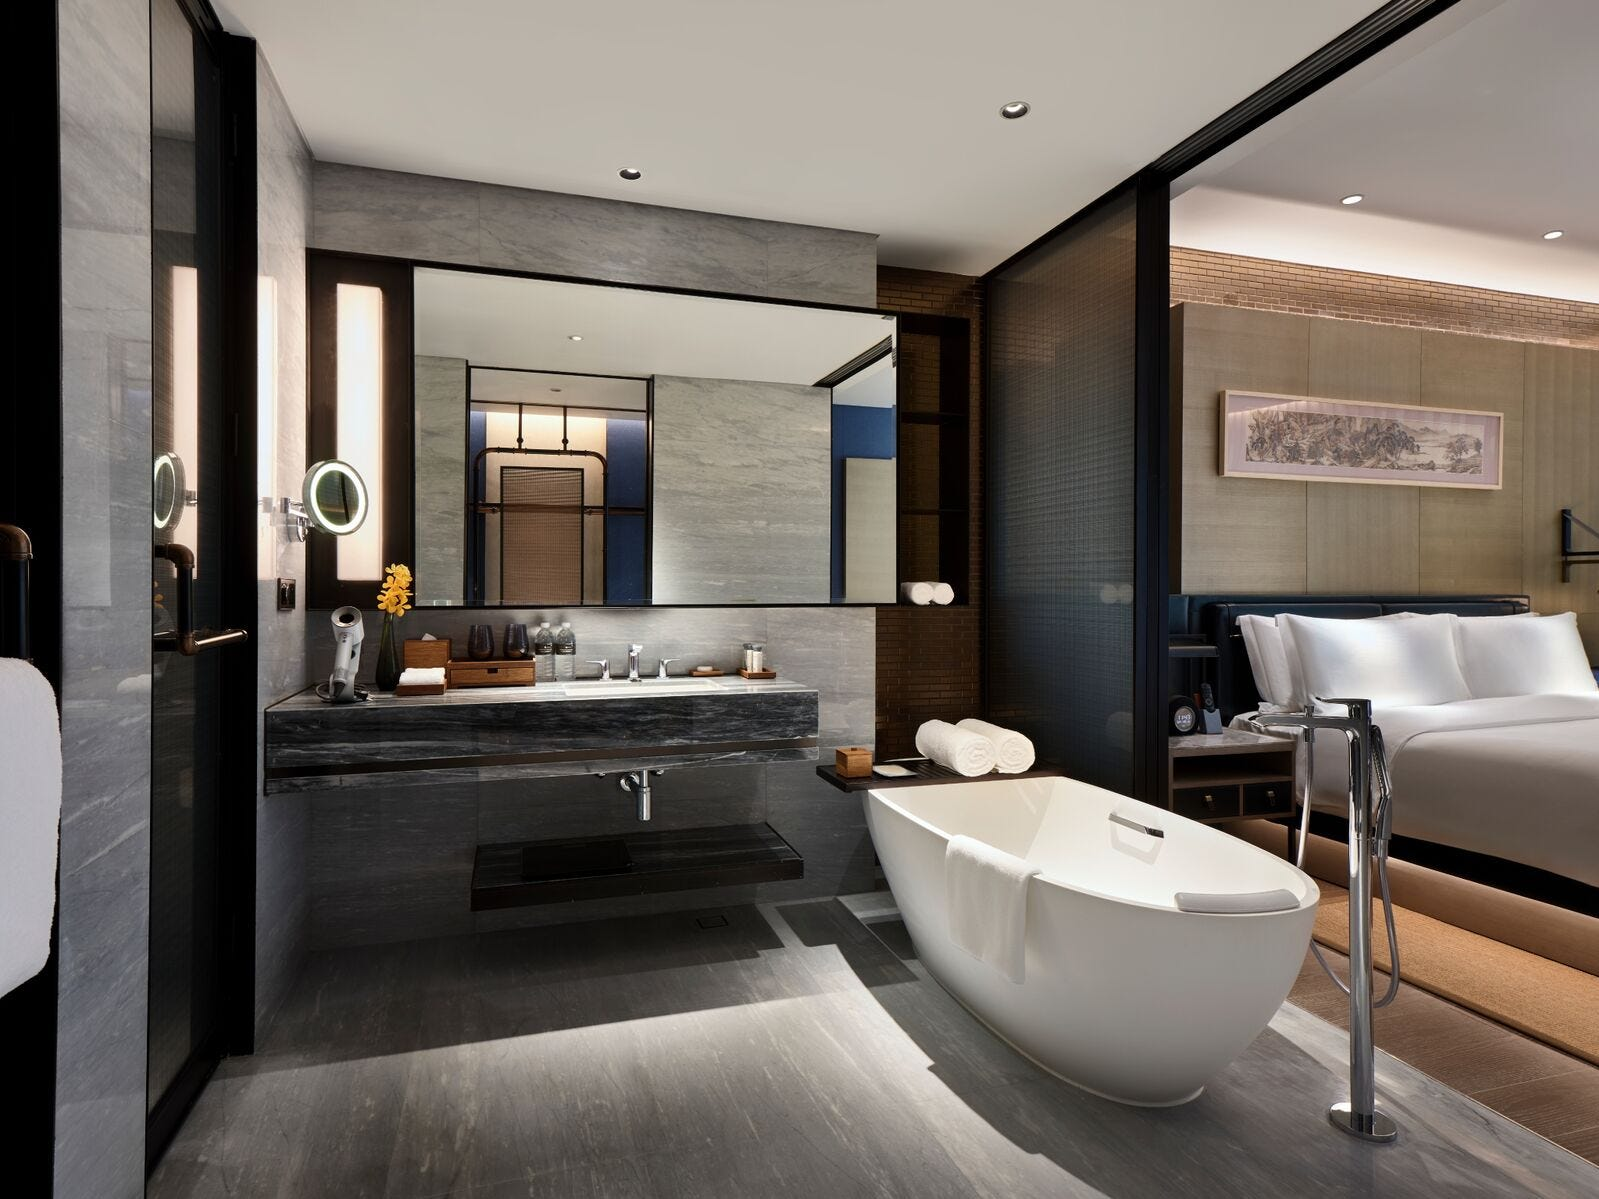 Some rooms have open-plan bathrooms with sliding doors for privacy while others, like this suite bathroom, have fanciful vanities and lighting fixtures. Guest rooms stock Salvatore Ferragamo products while suites pile on the luxury with Acqua di Parma goodies.